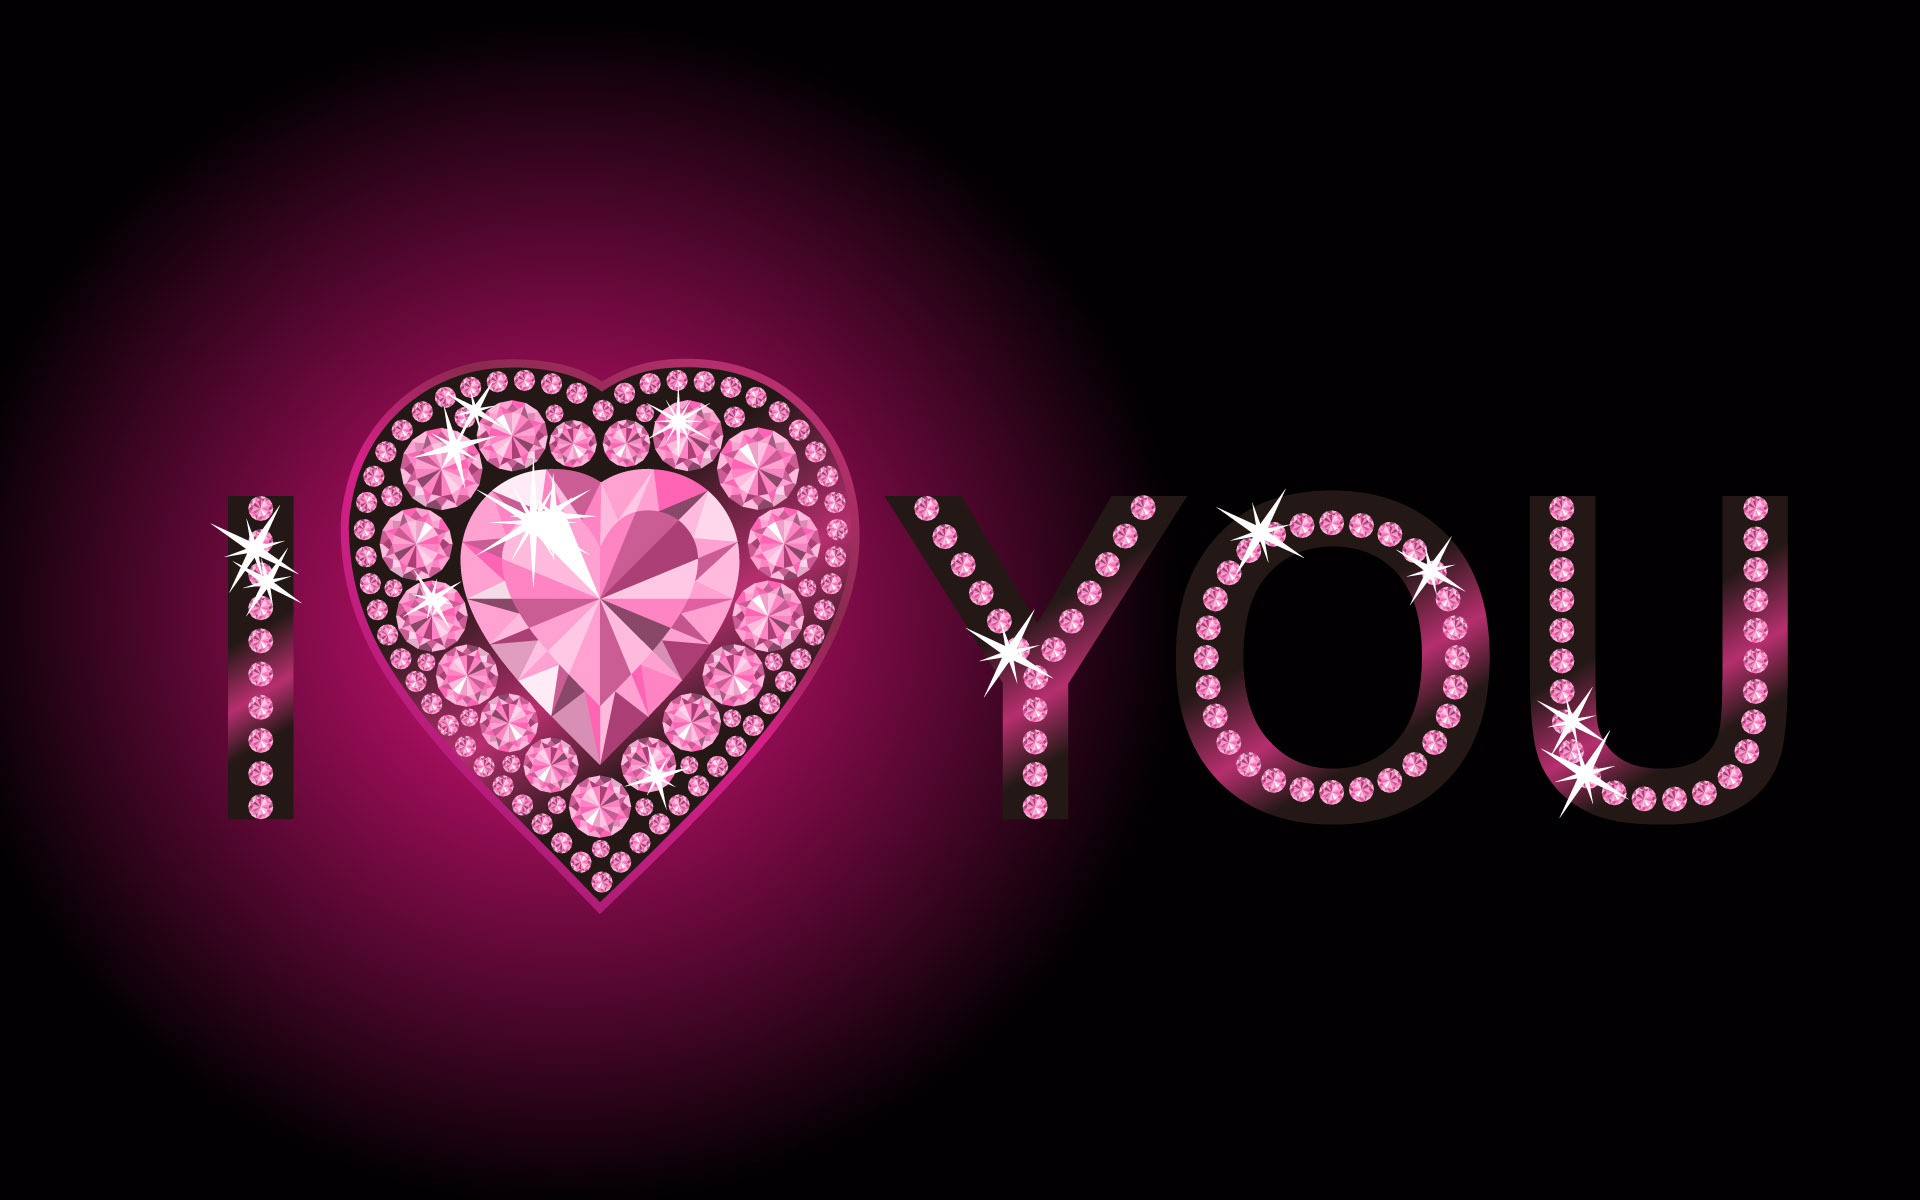 Desktop Wallpaper I Love You : I Love You Desktop Wallpaper - Wallpaper, High Definition, High Quality, Widescreen